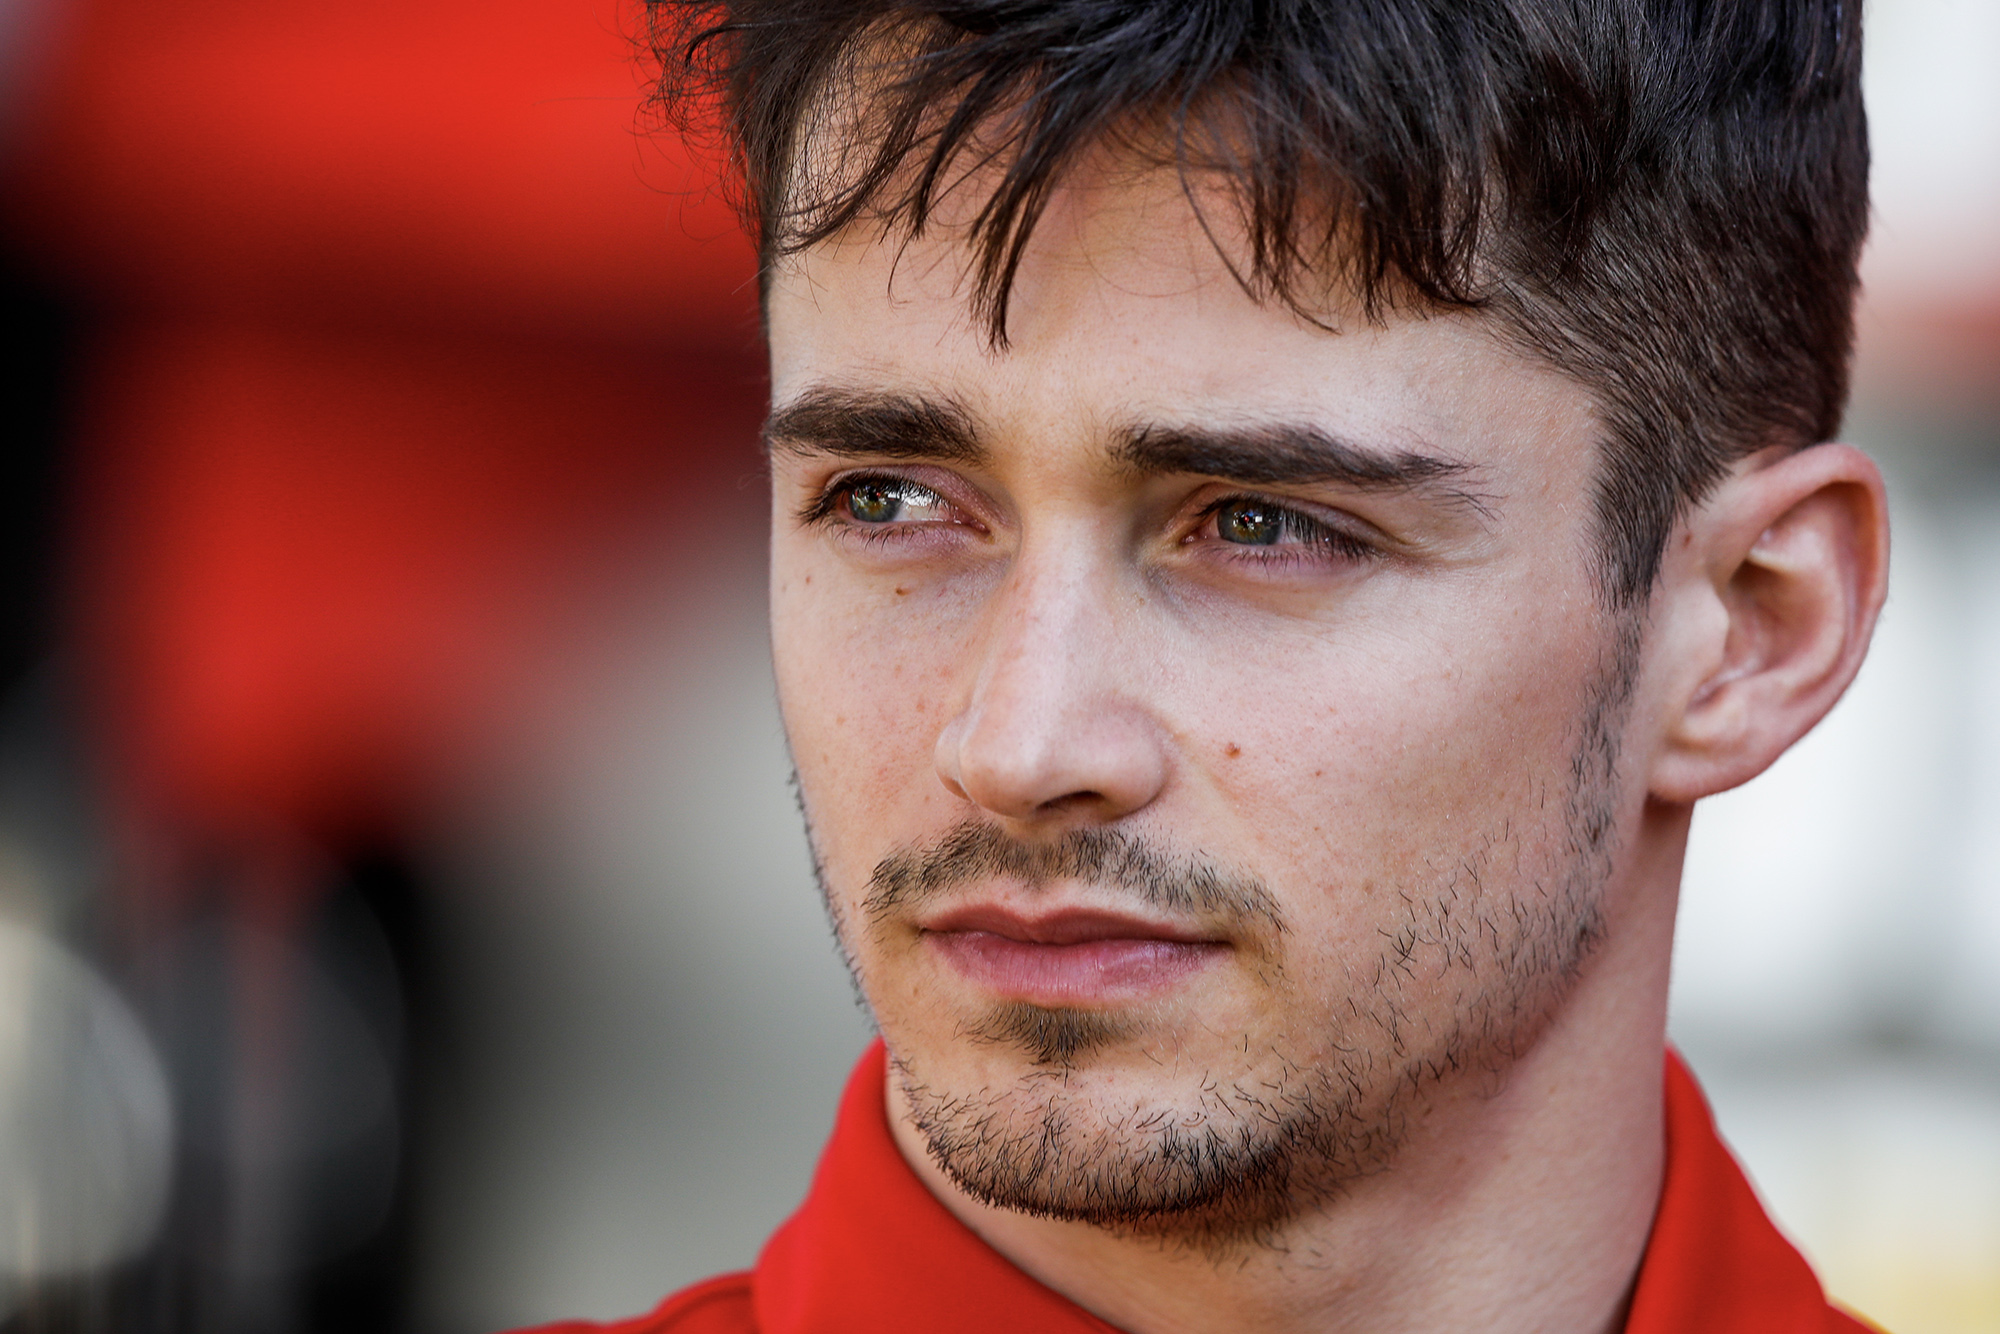 Charles Leclerc happy to keep Vettel as a team-mate: 'We've always had a good relationship'